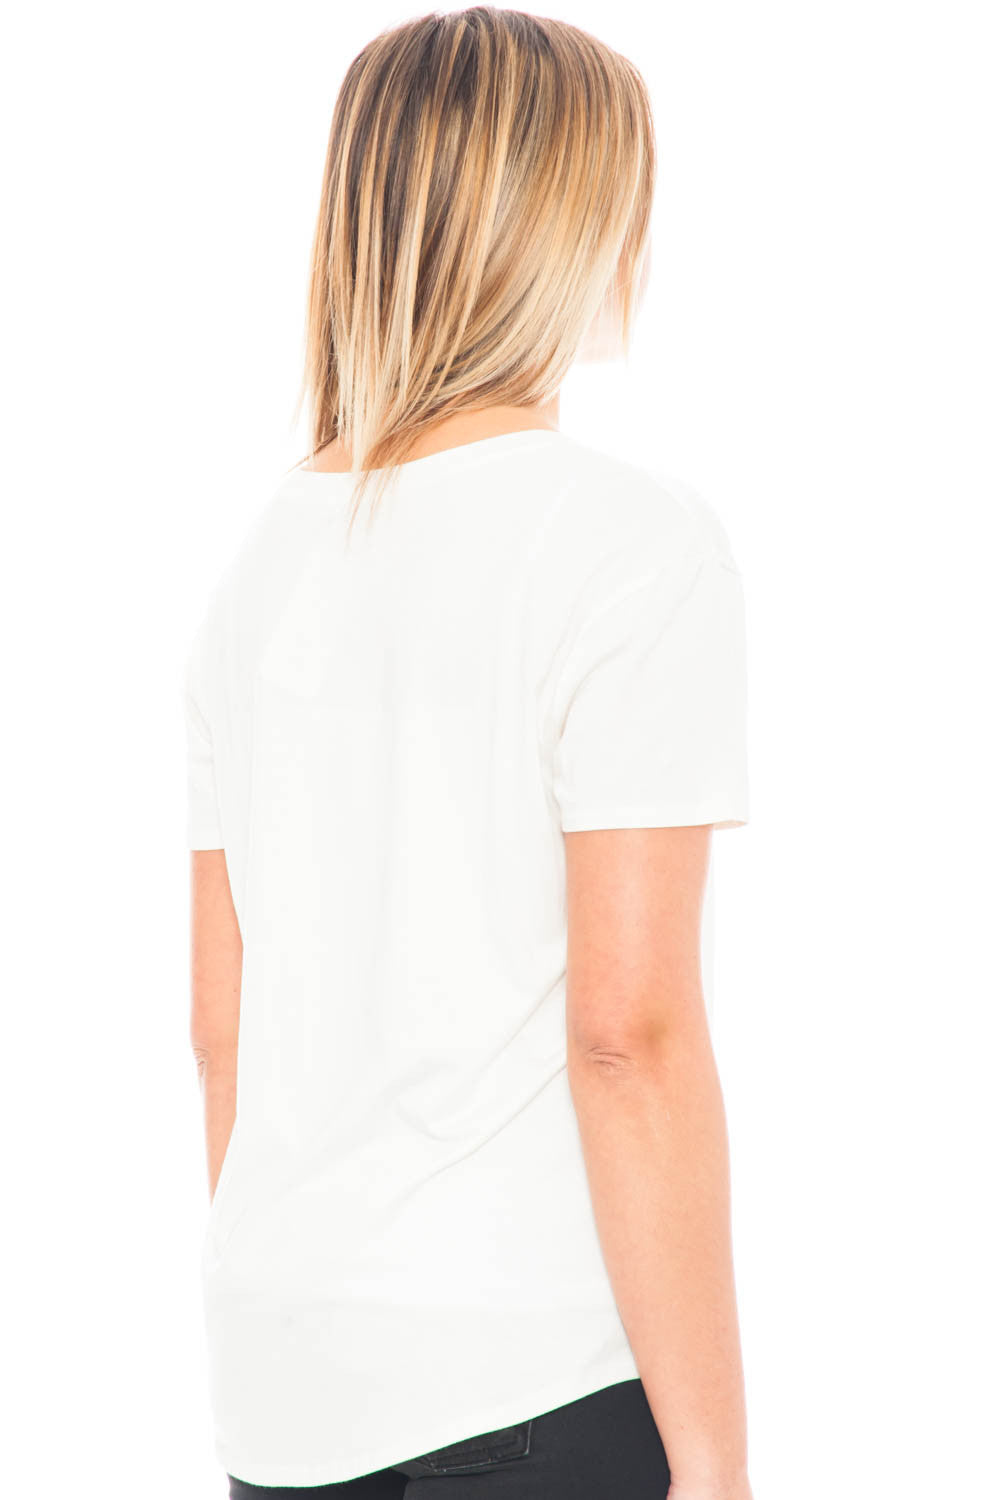 Tee - Save Water Drink Champagne Semi-Sheer Top